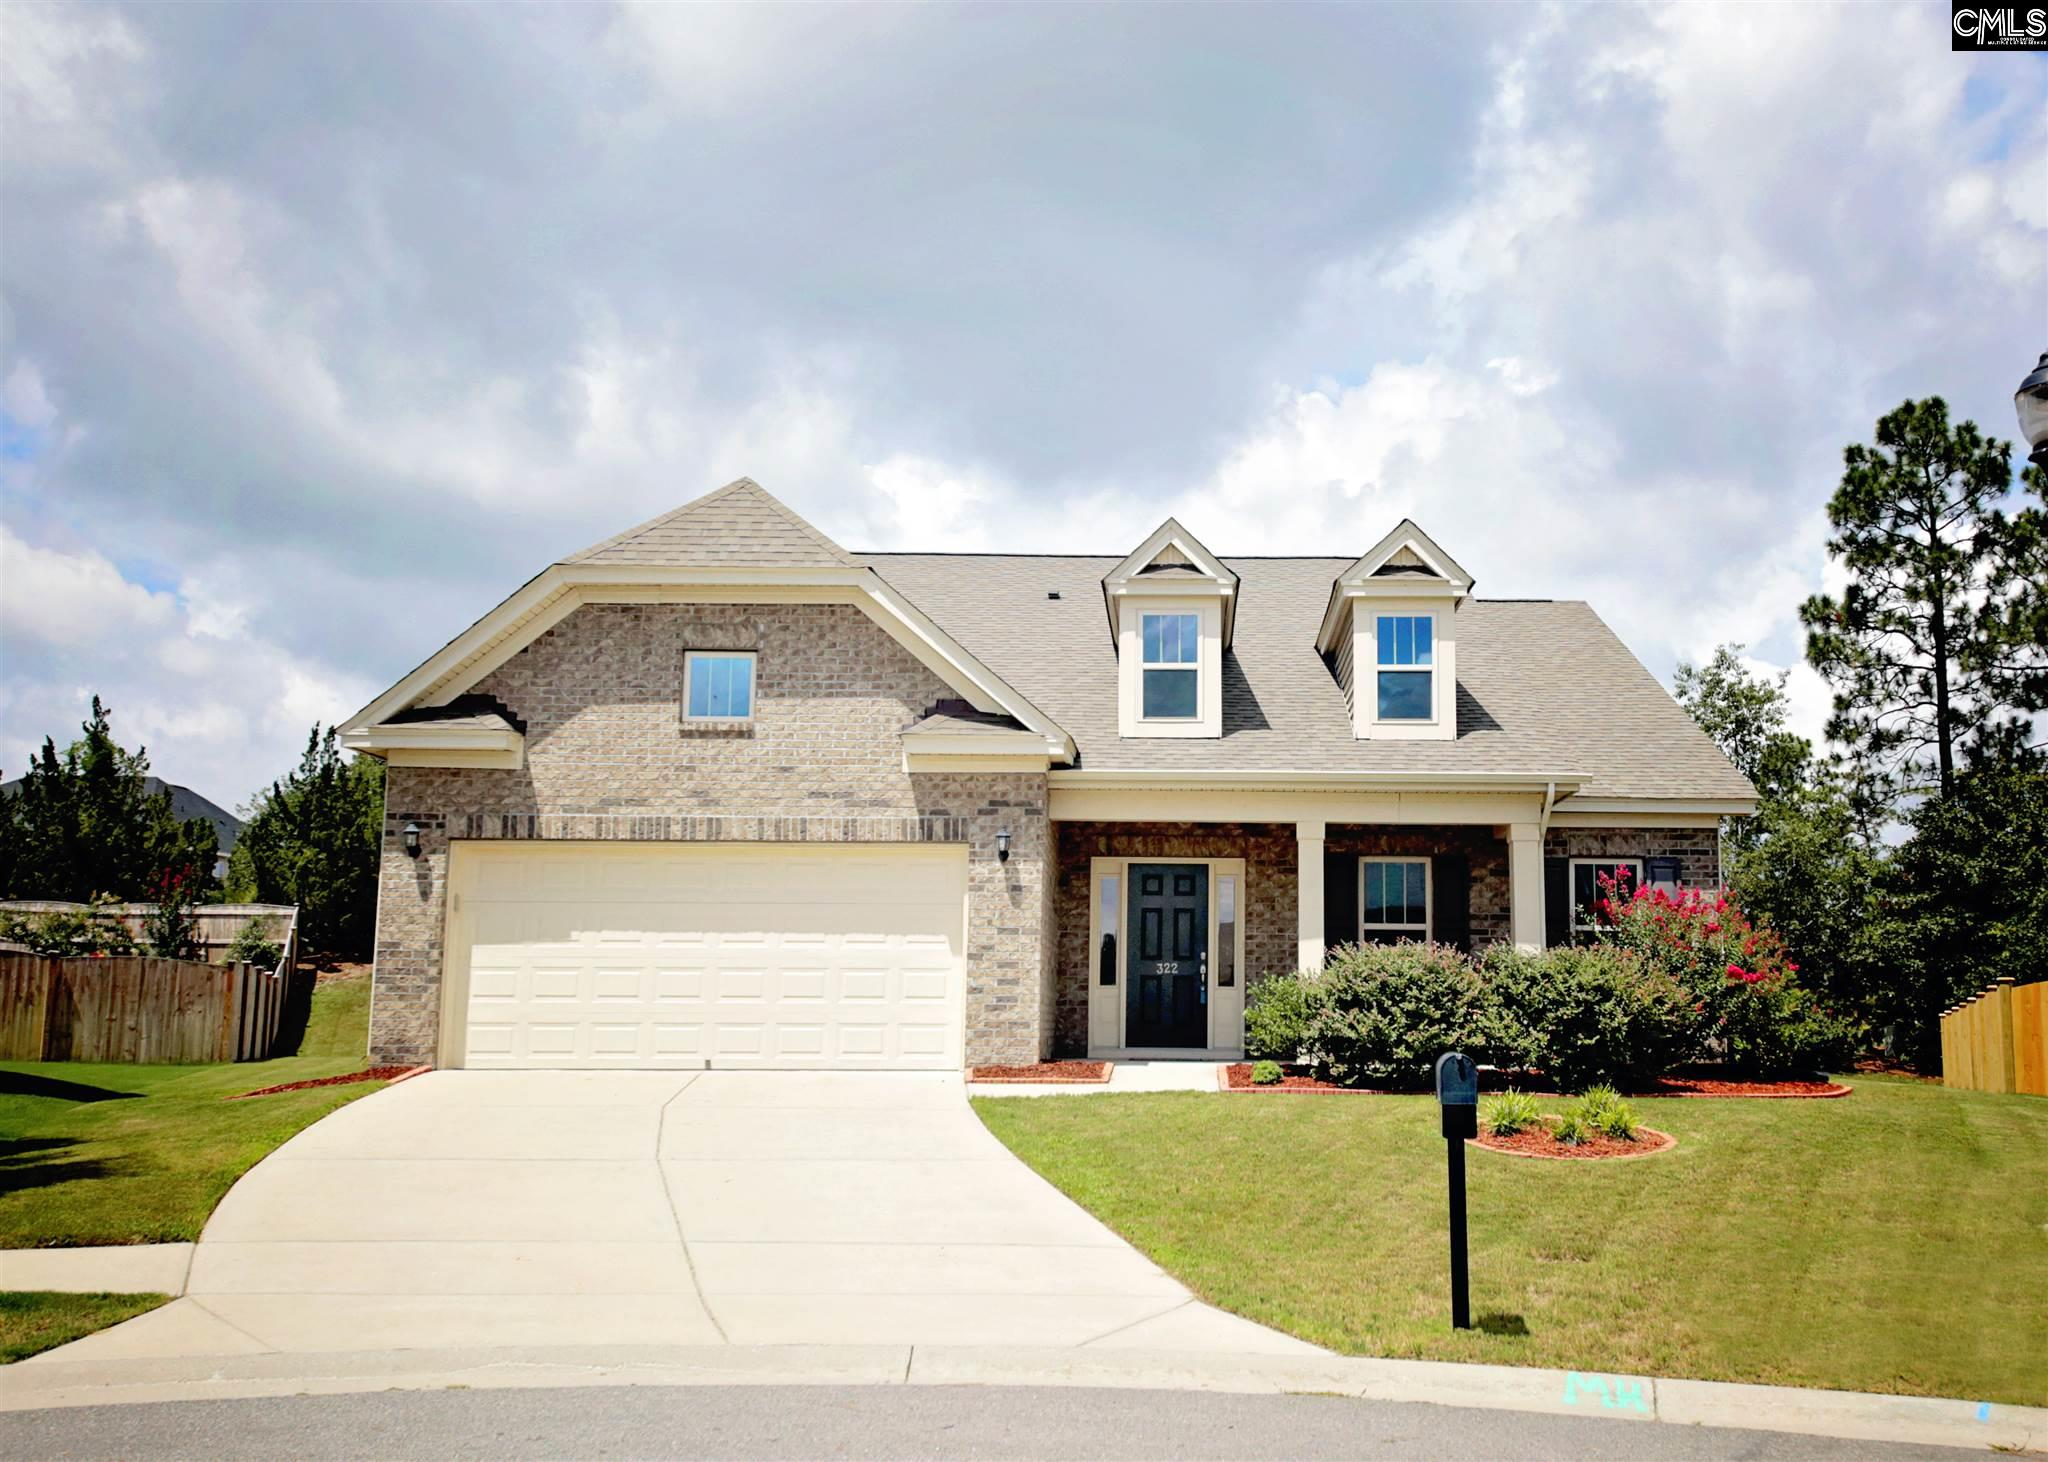 322 Justin Rogers Lexington, SC 29072